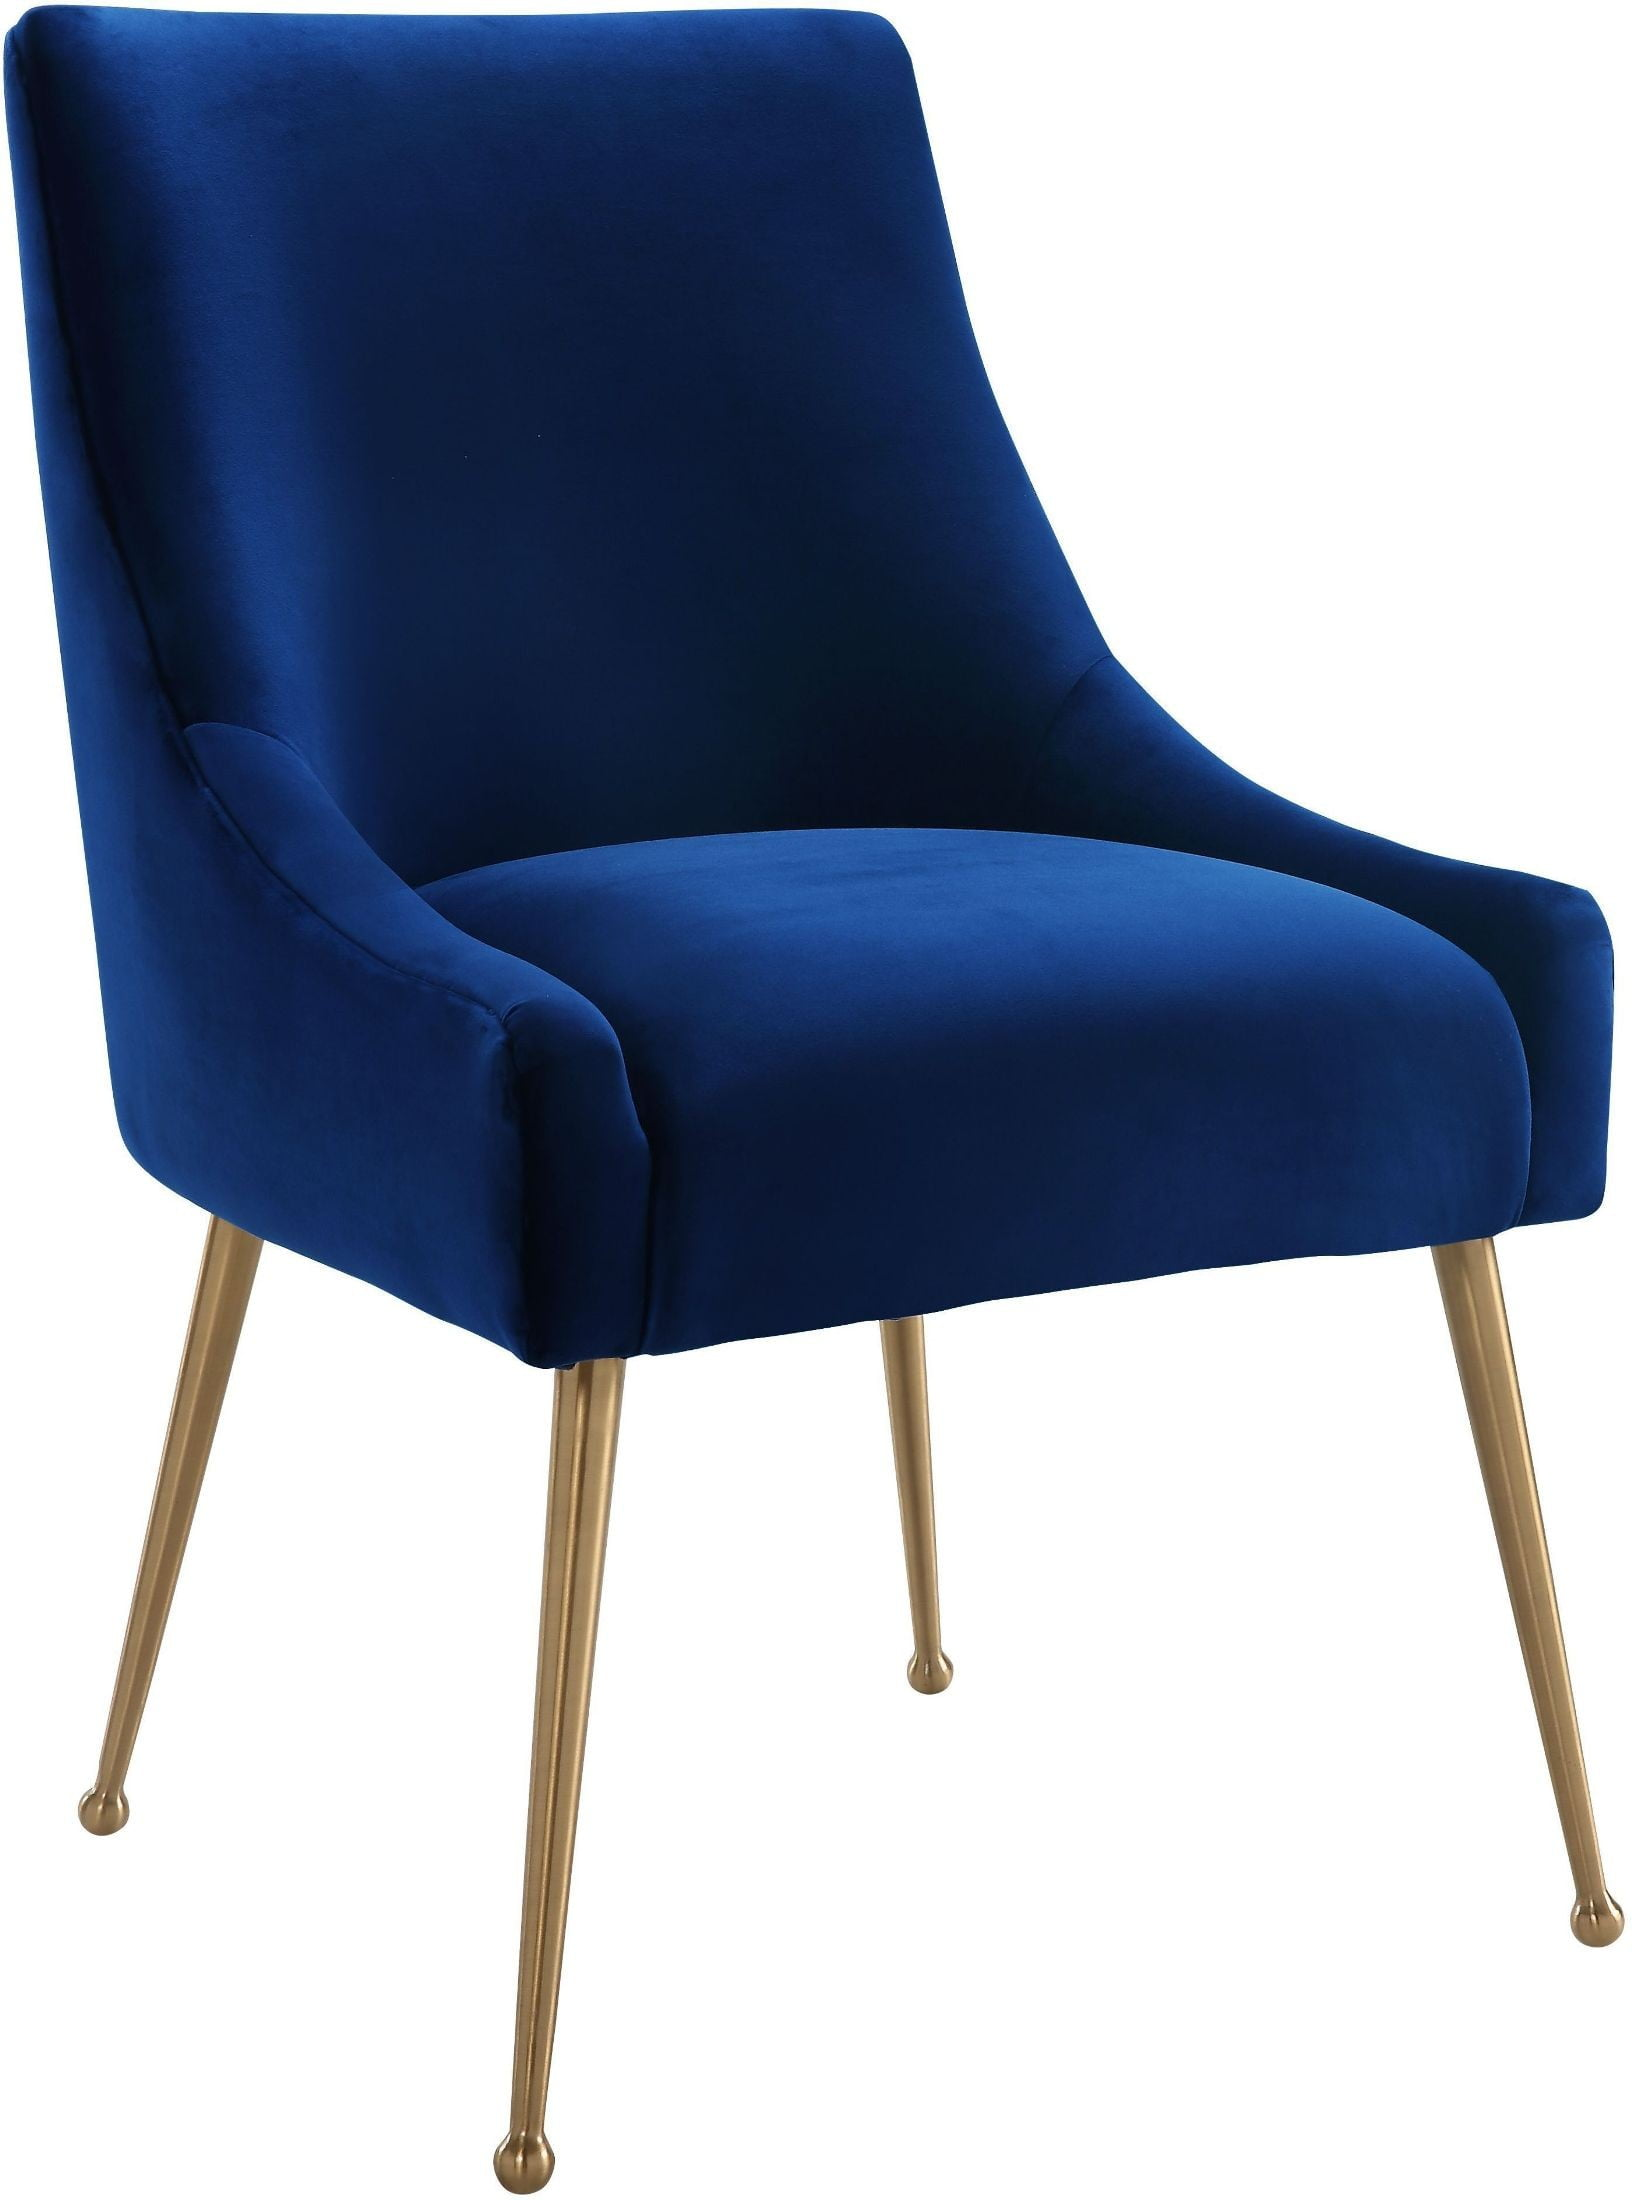 chair 1 2 desk leather beatrix navy velvet side from tov coleman furniture